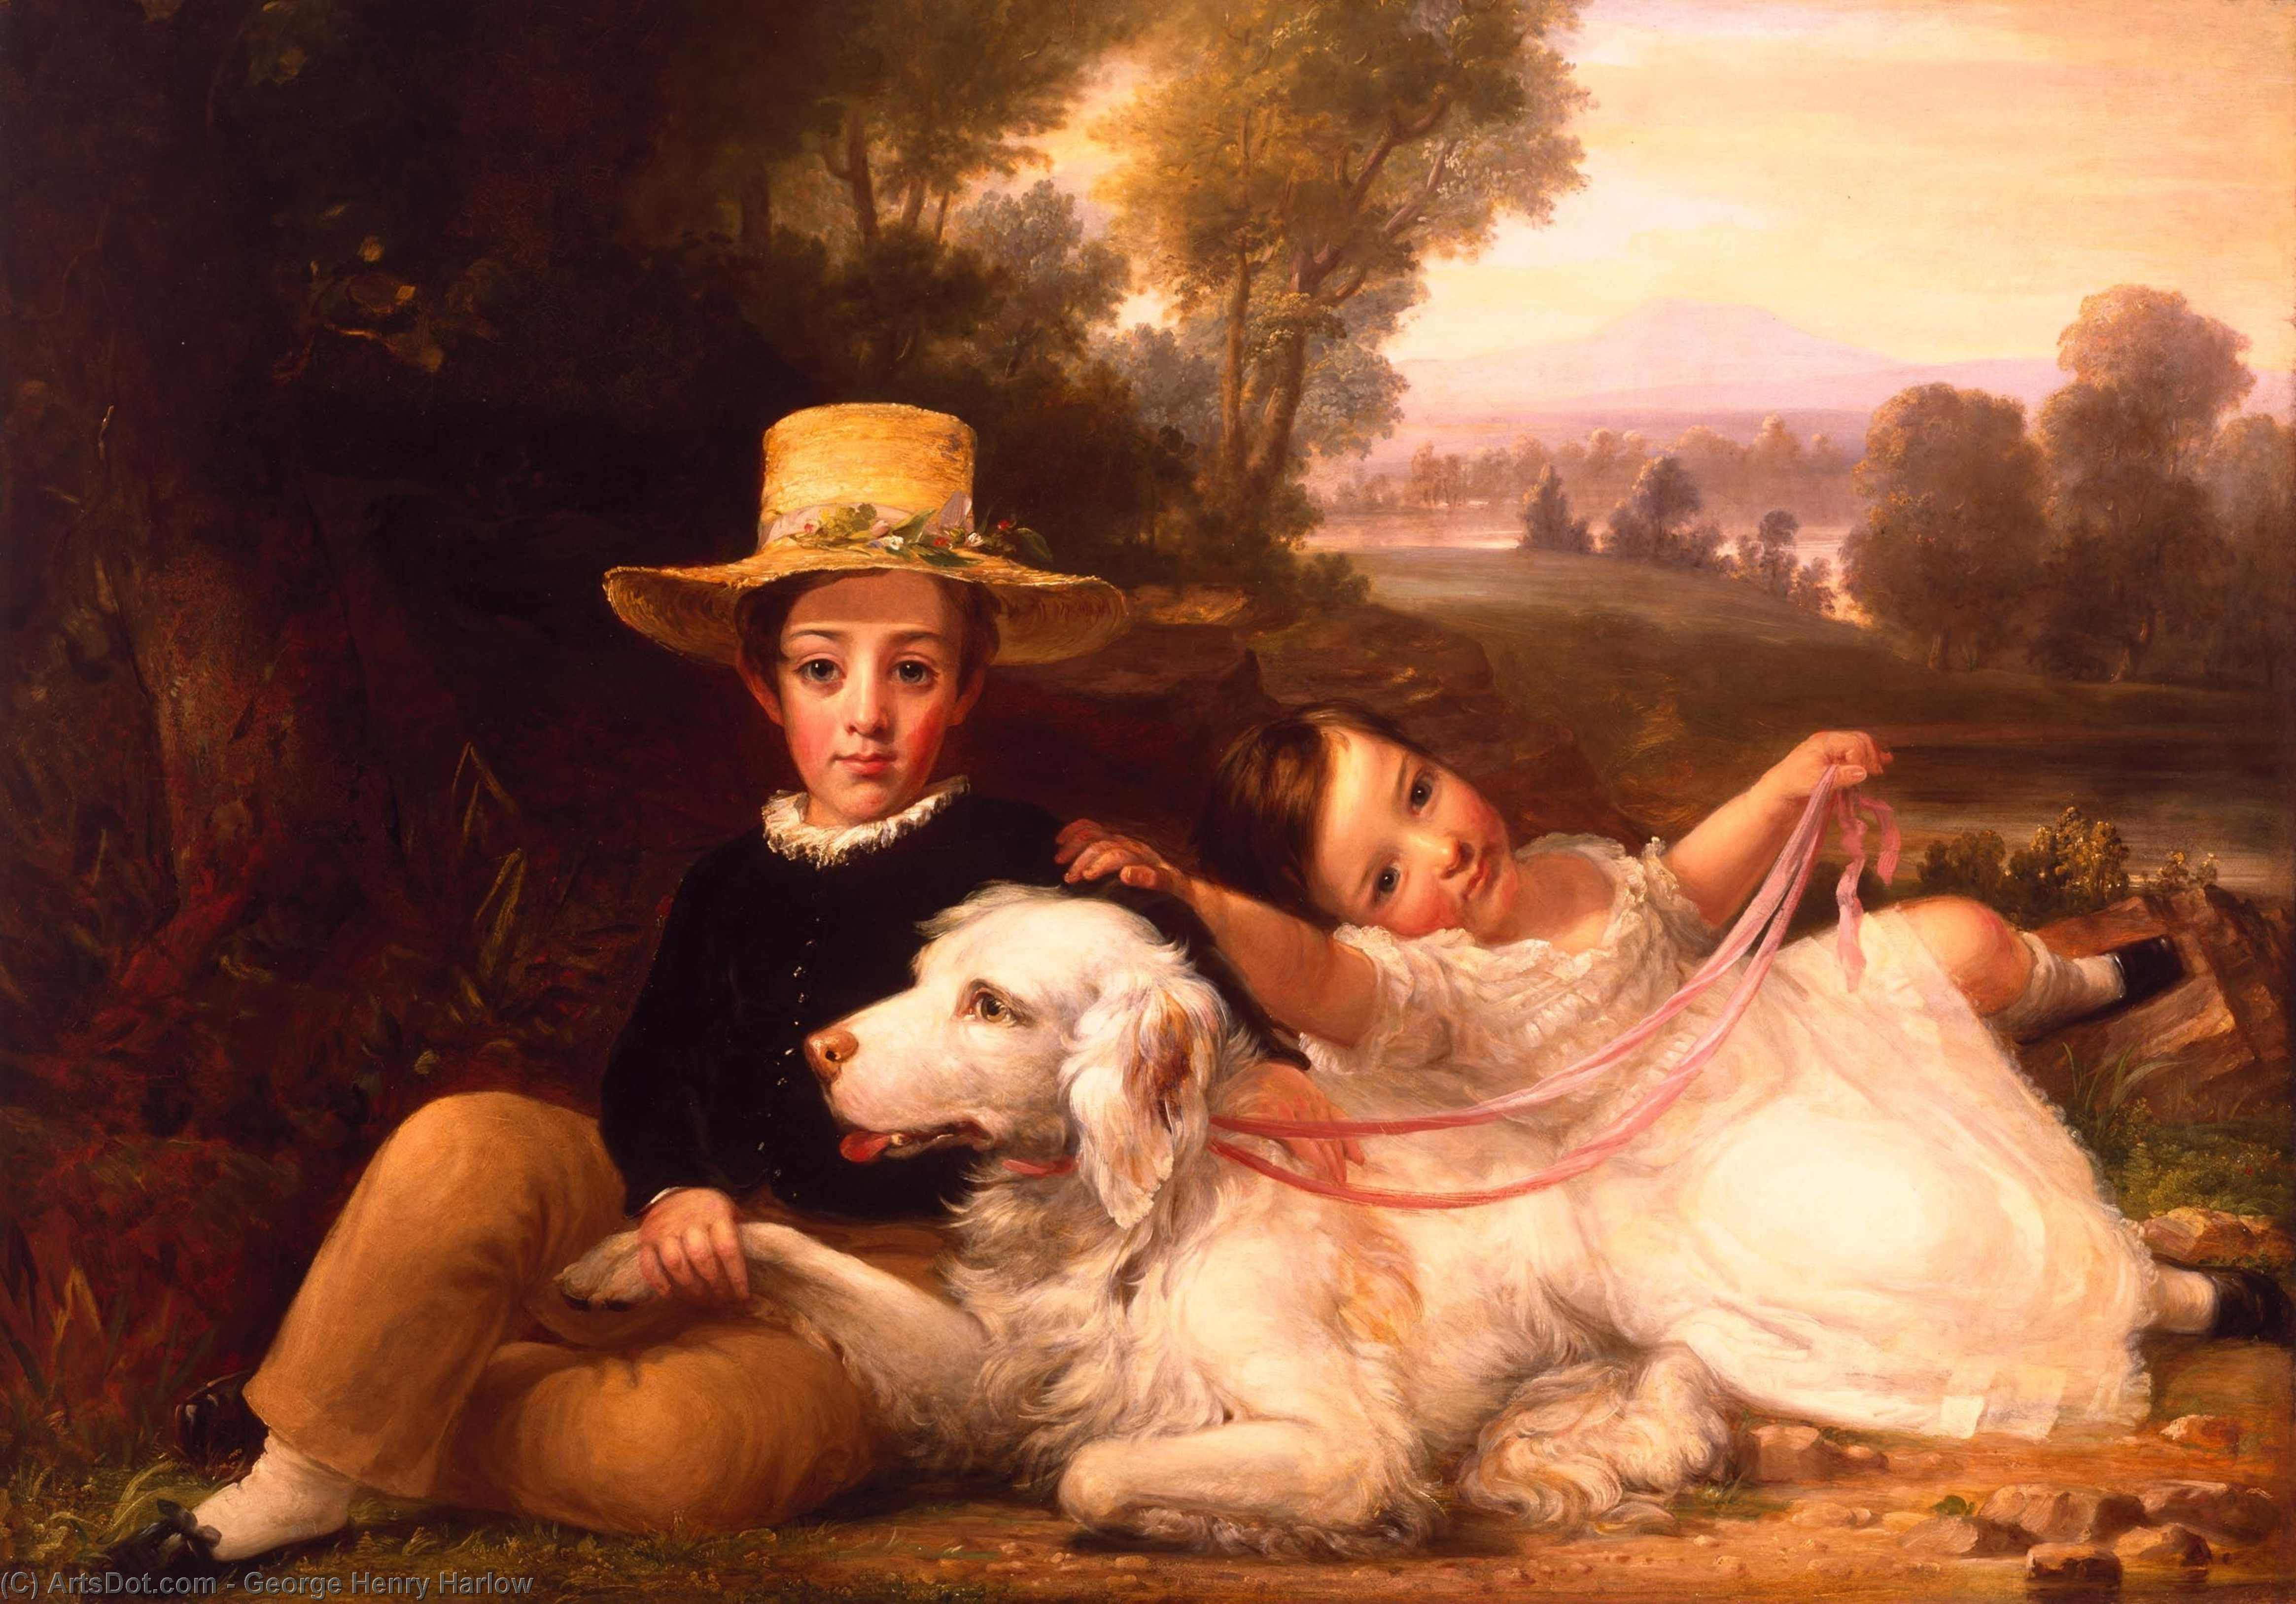 Portrait Of Two Children by George Henry Harlow (1787-1819, United Kingdom)